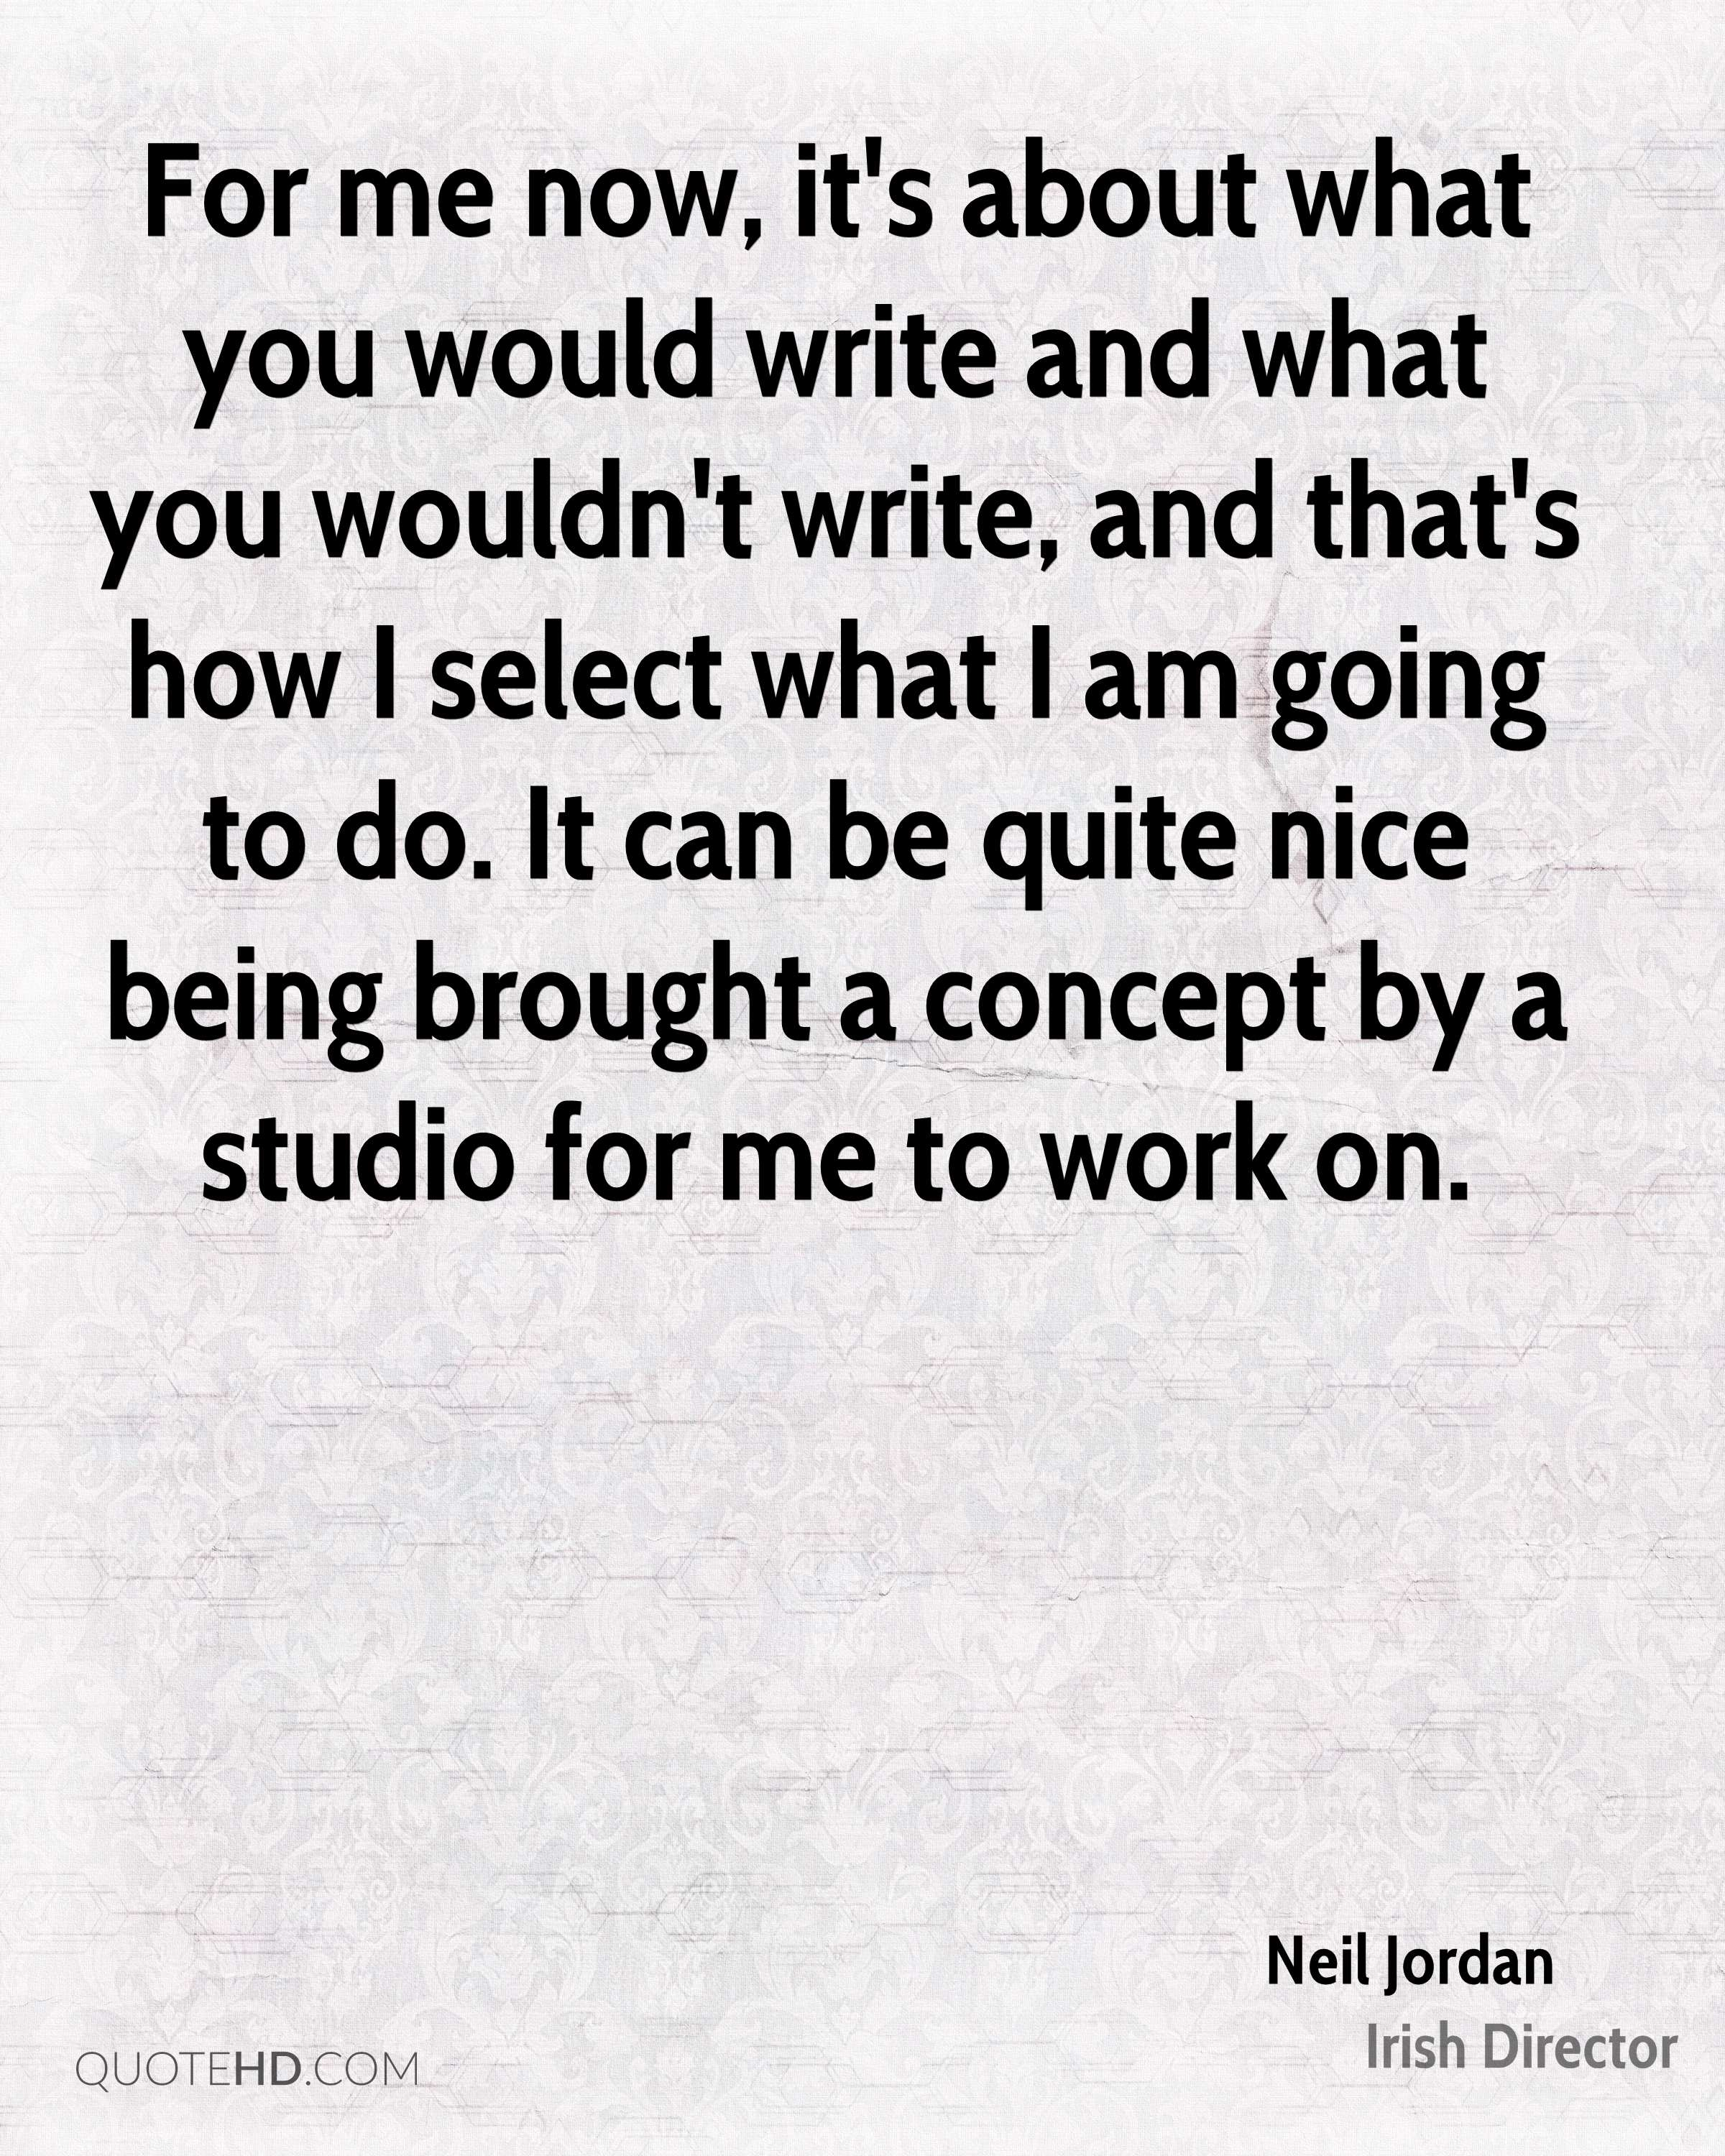 For me now, it's about what you would write and what you wouldn't write, and that's how I select what I am going to do. It can be quite nice being brought a concept by a studio for me to work on.